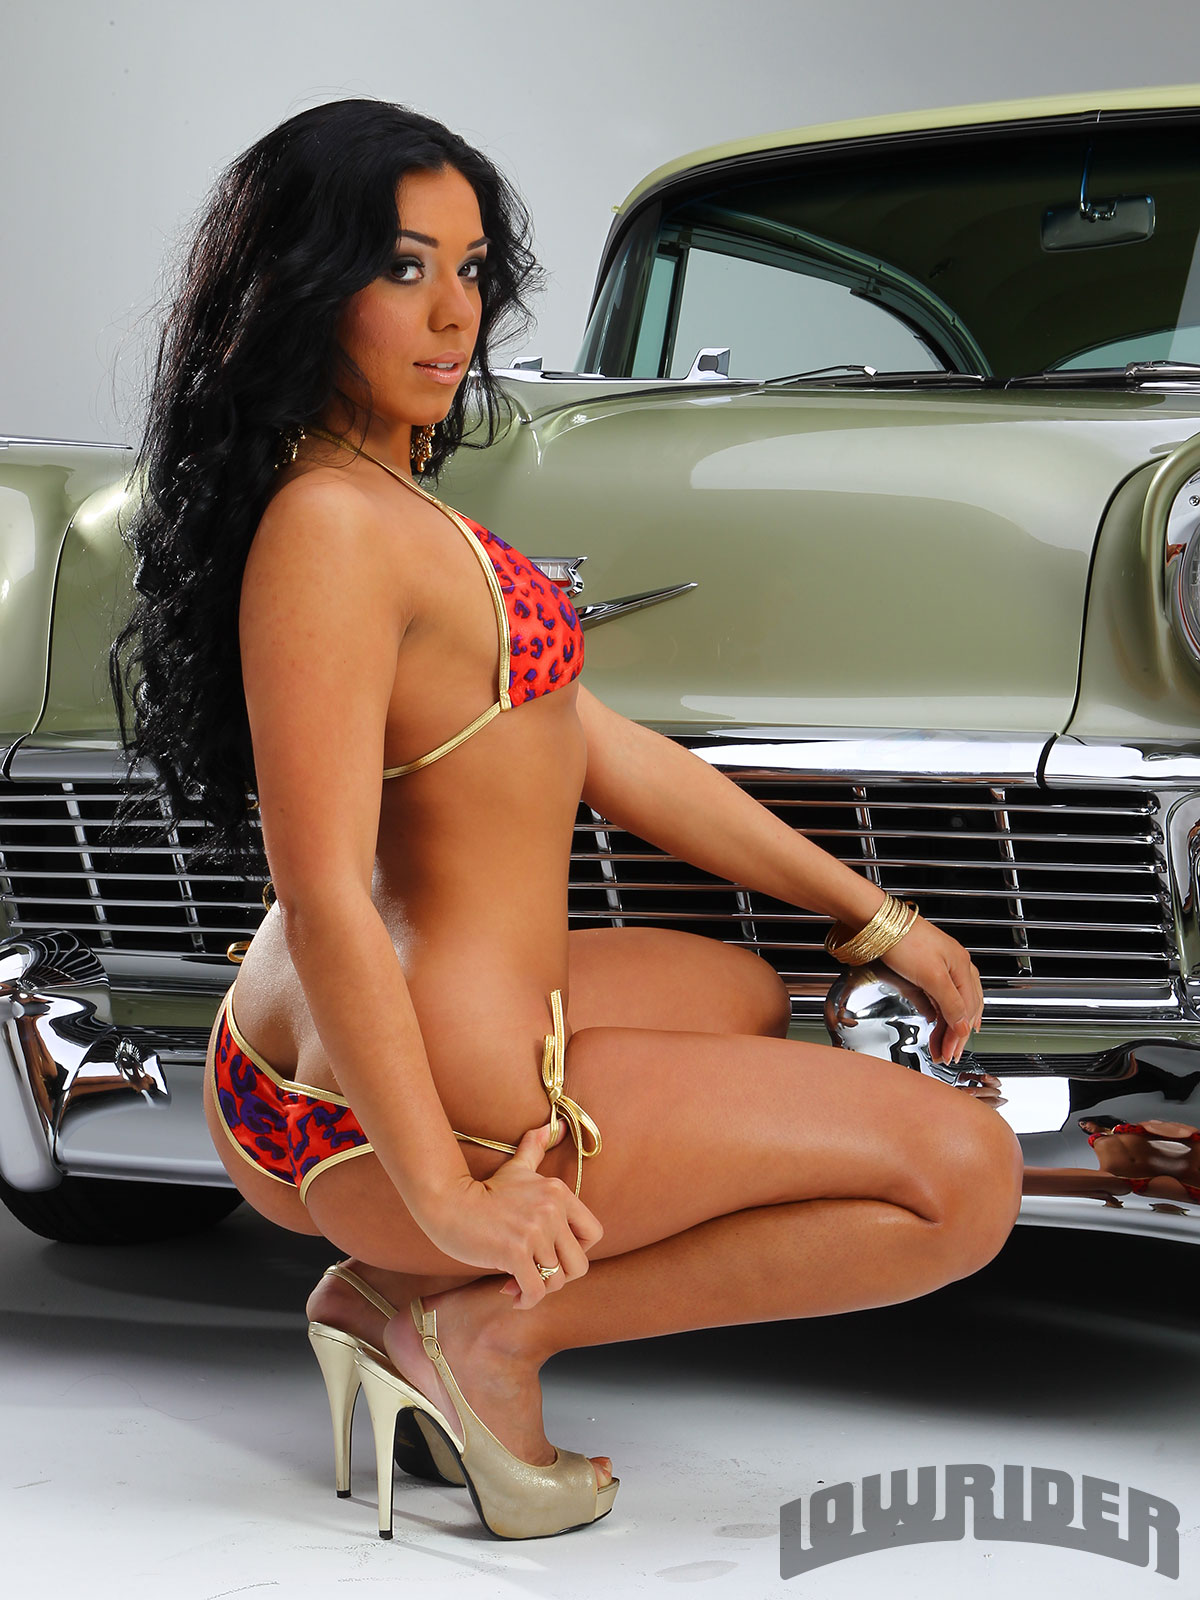 Pussy naked lowrider ladies young white